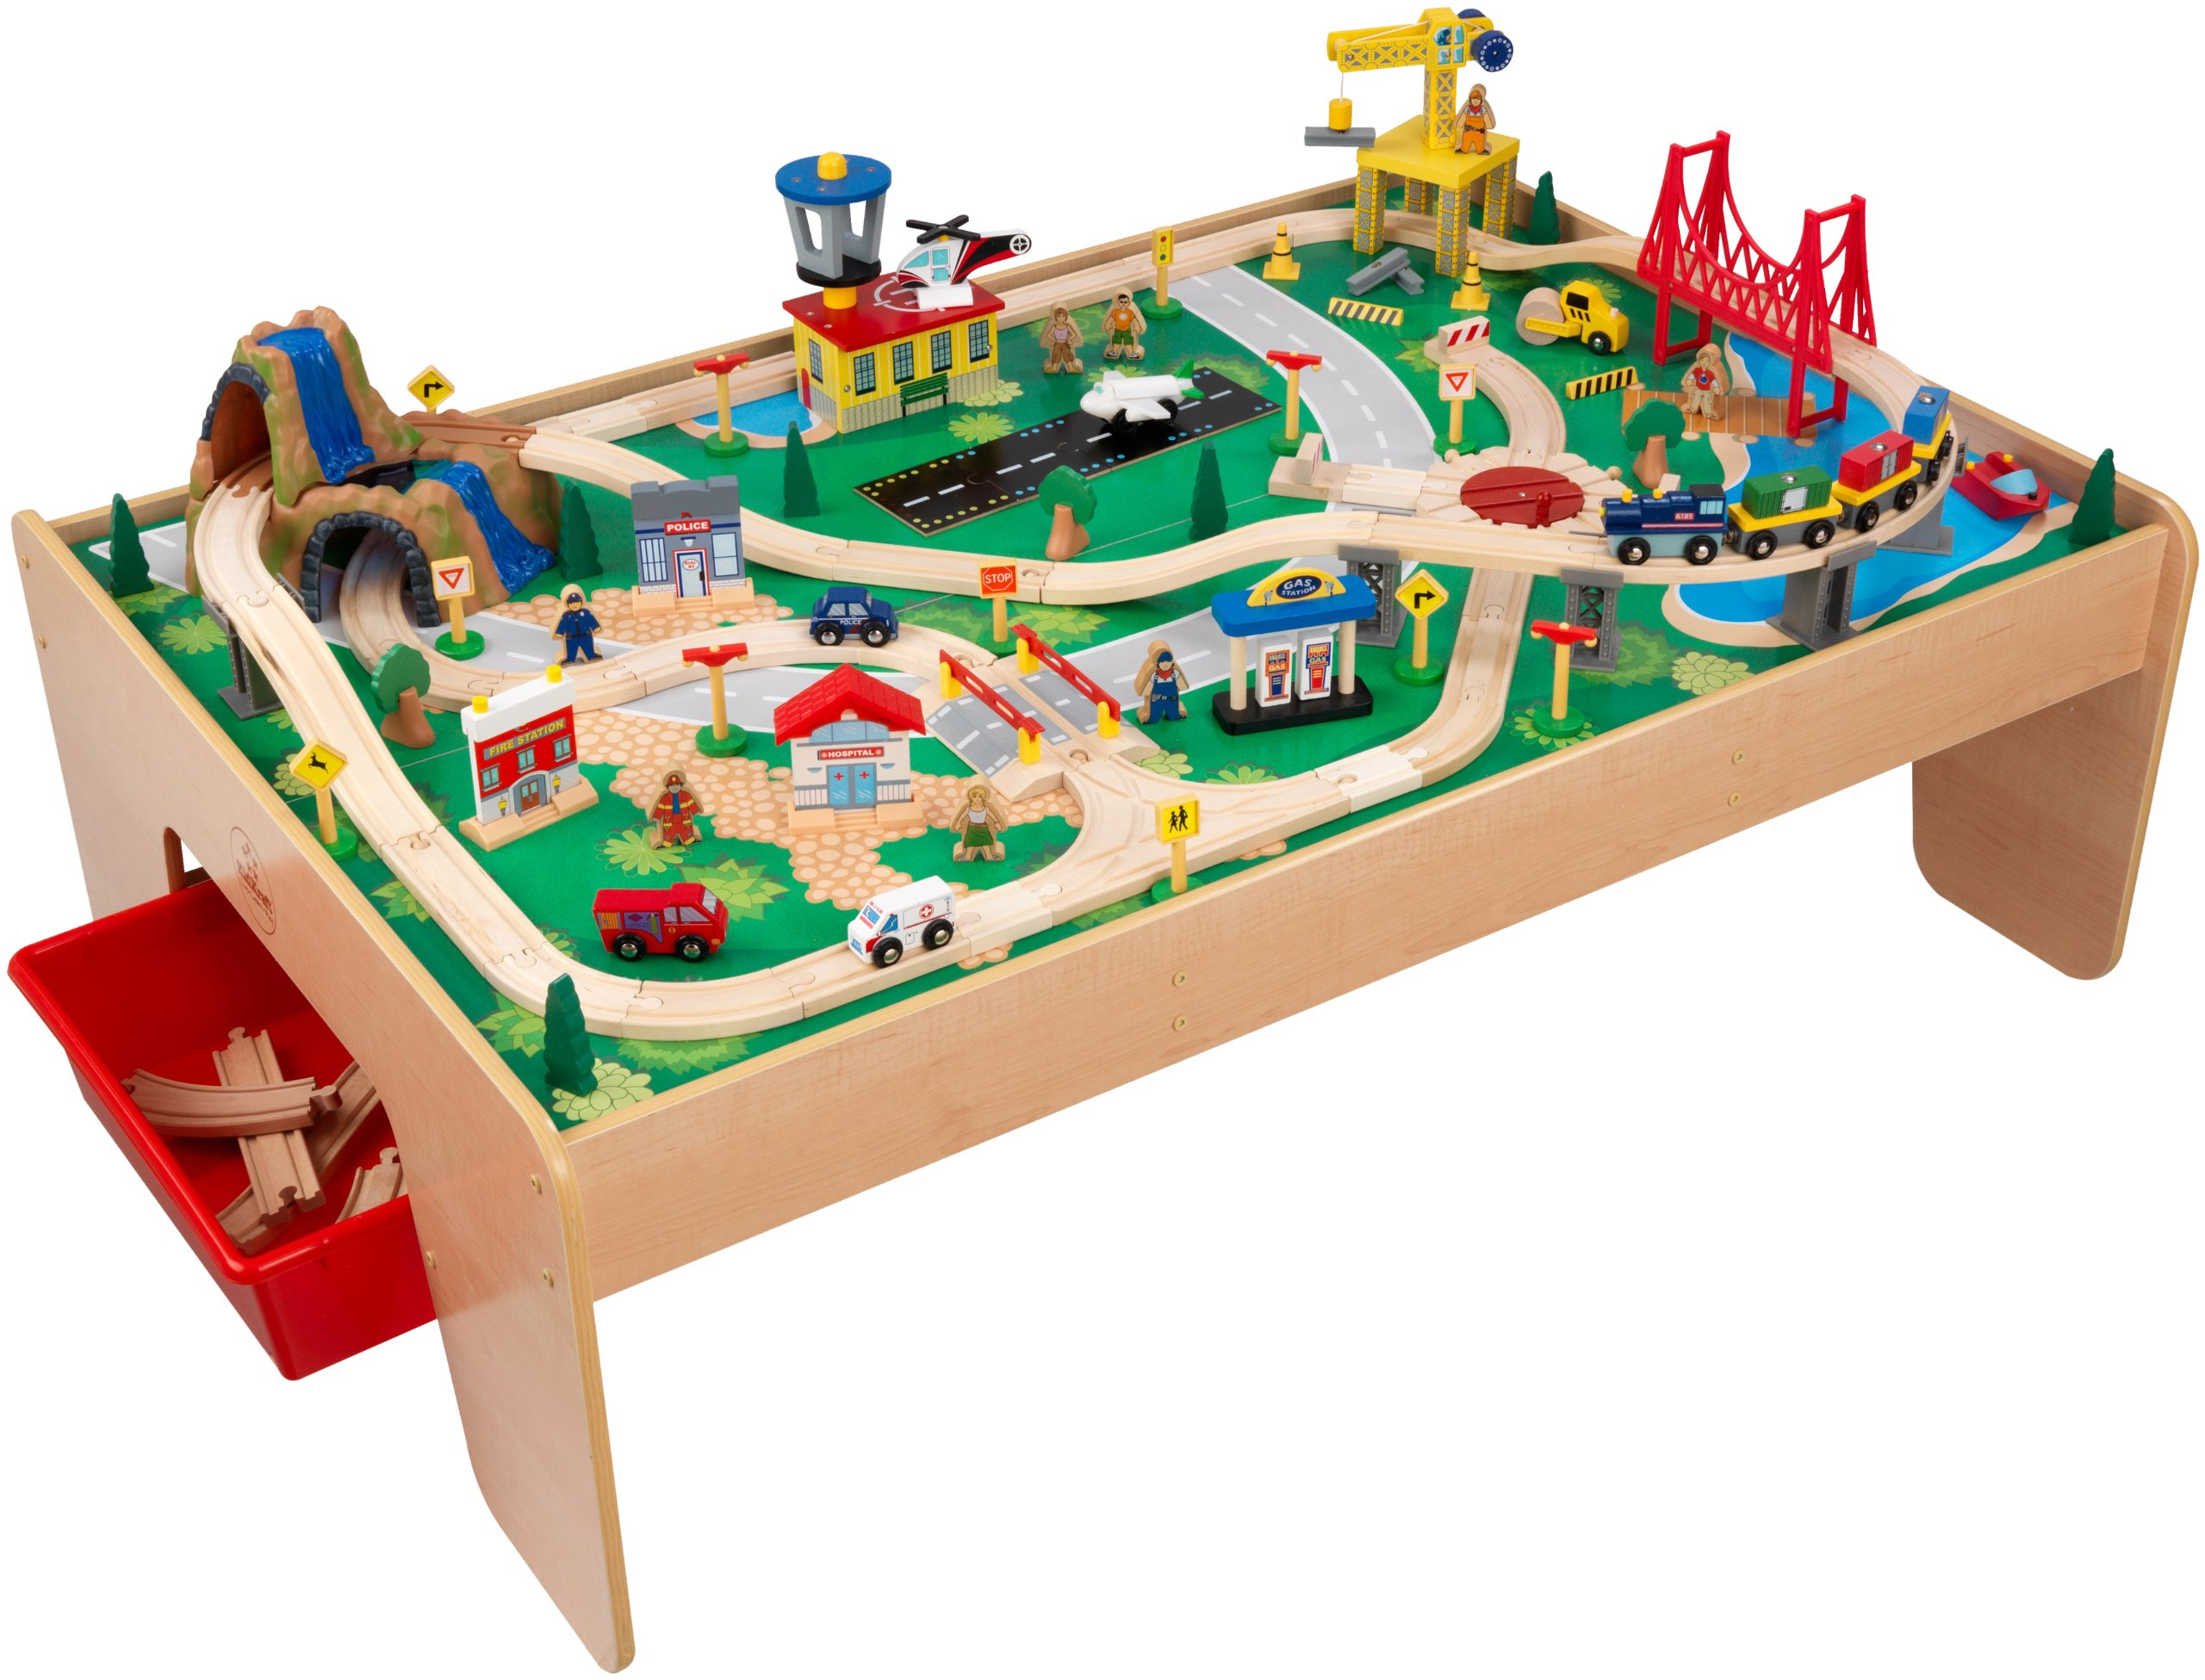 Exceptionnel 120pc Waterfall Mountain Train U0026 Table Kids Creative Toy Boys Birthday Fun  Gift